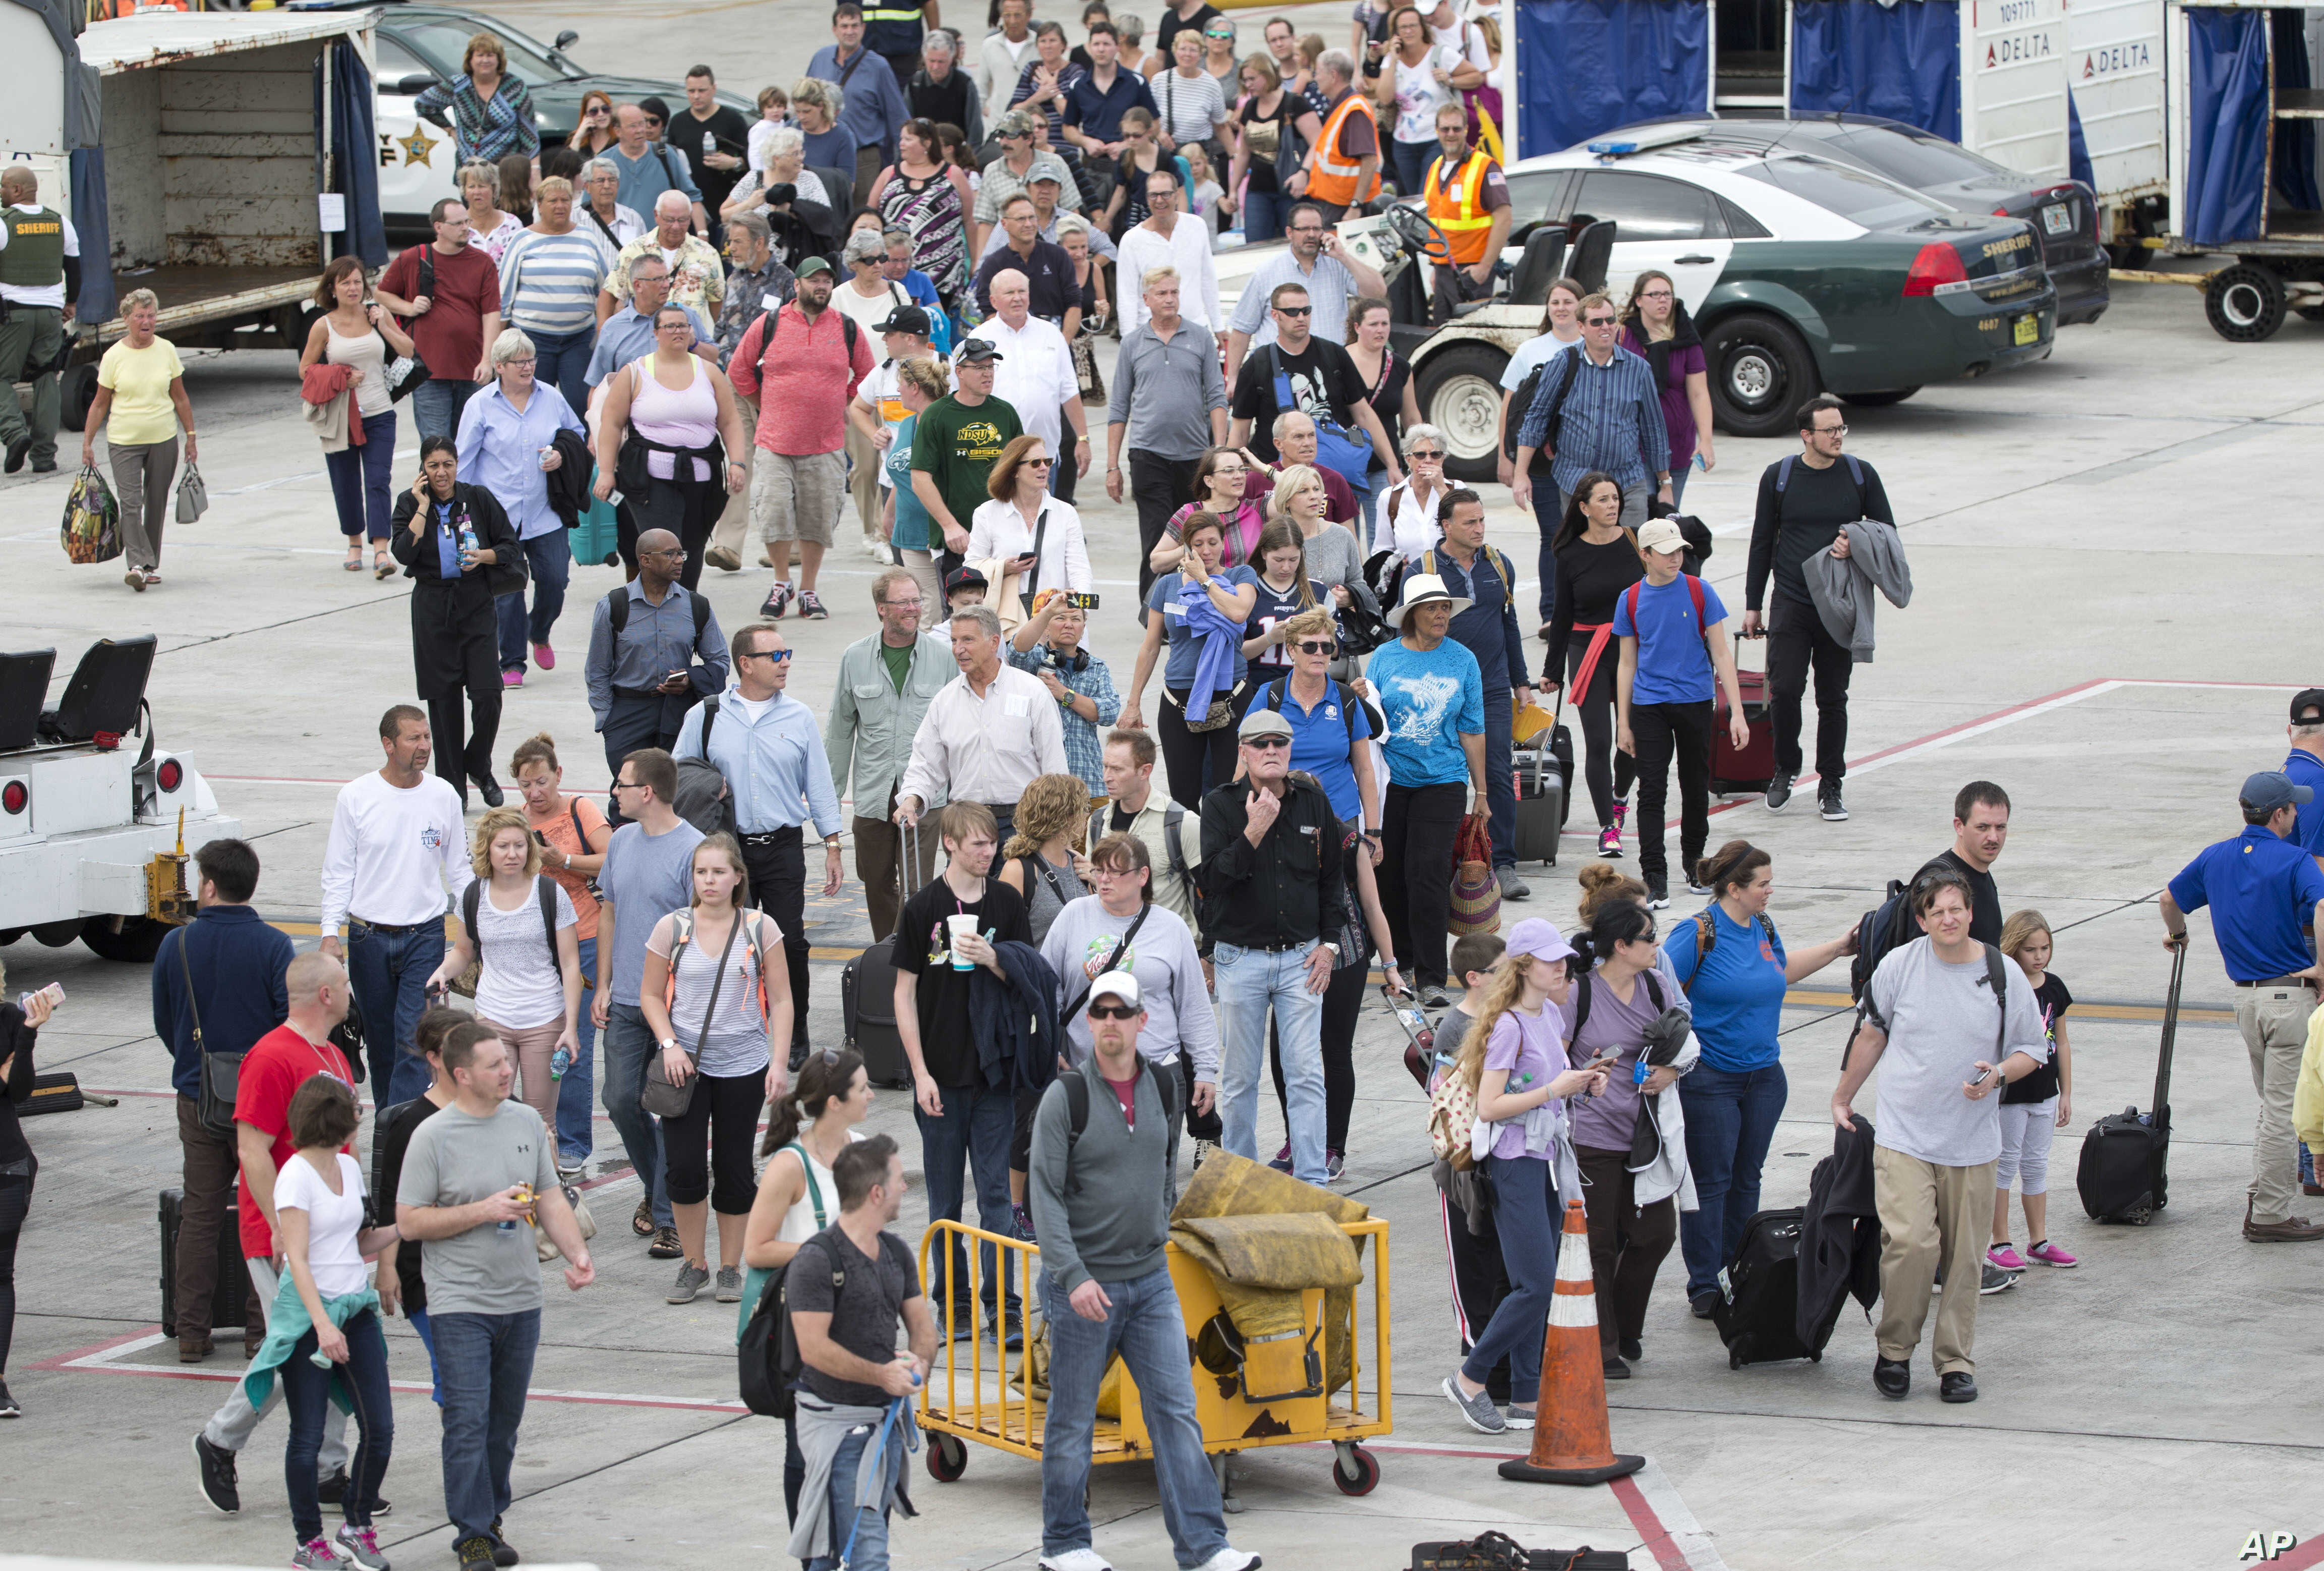 Passengers are shown on the tarmac outside Fort Lauderdale–Hollywood International Airport, Friday, Jan. 6, 2017, in Fort Lauderdale, Florida, after a shooter opened fire inside a terminal of the airport, killing several people and wounding others be